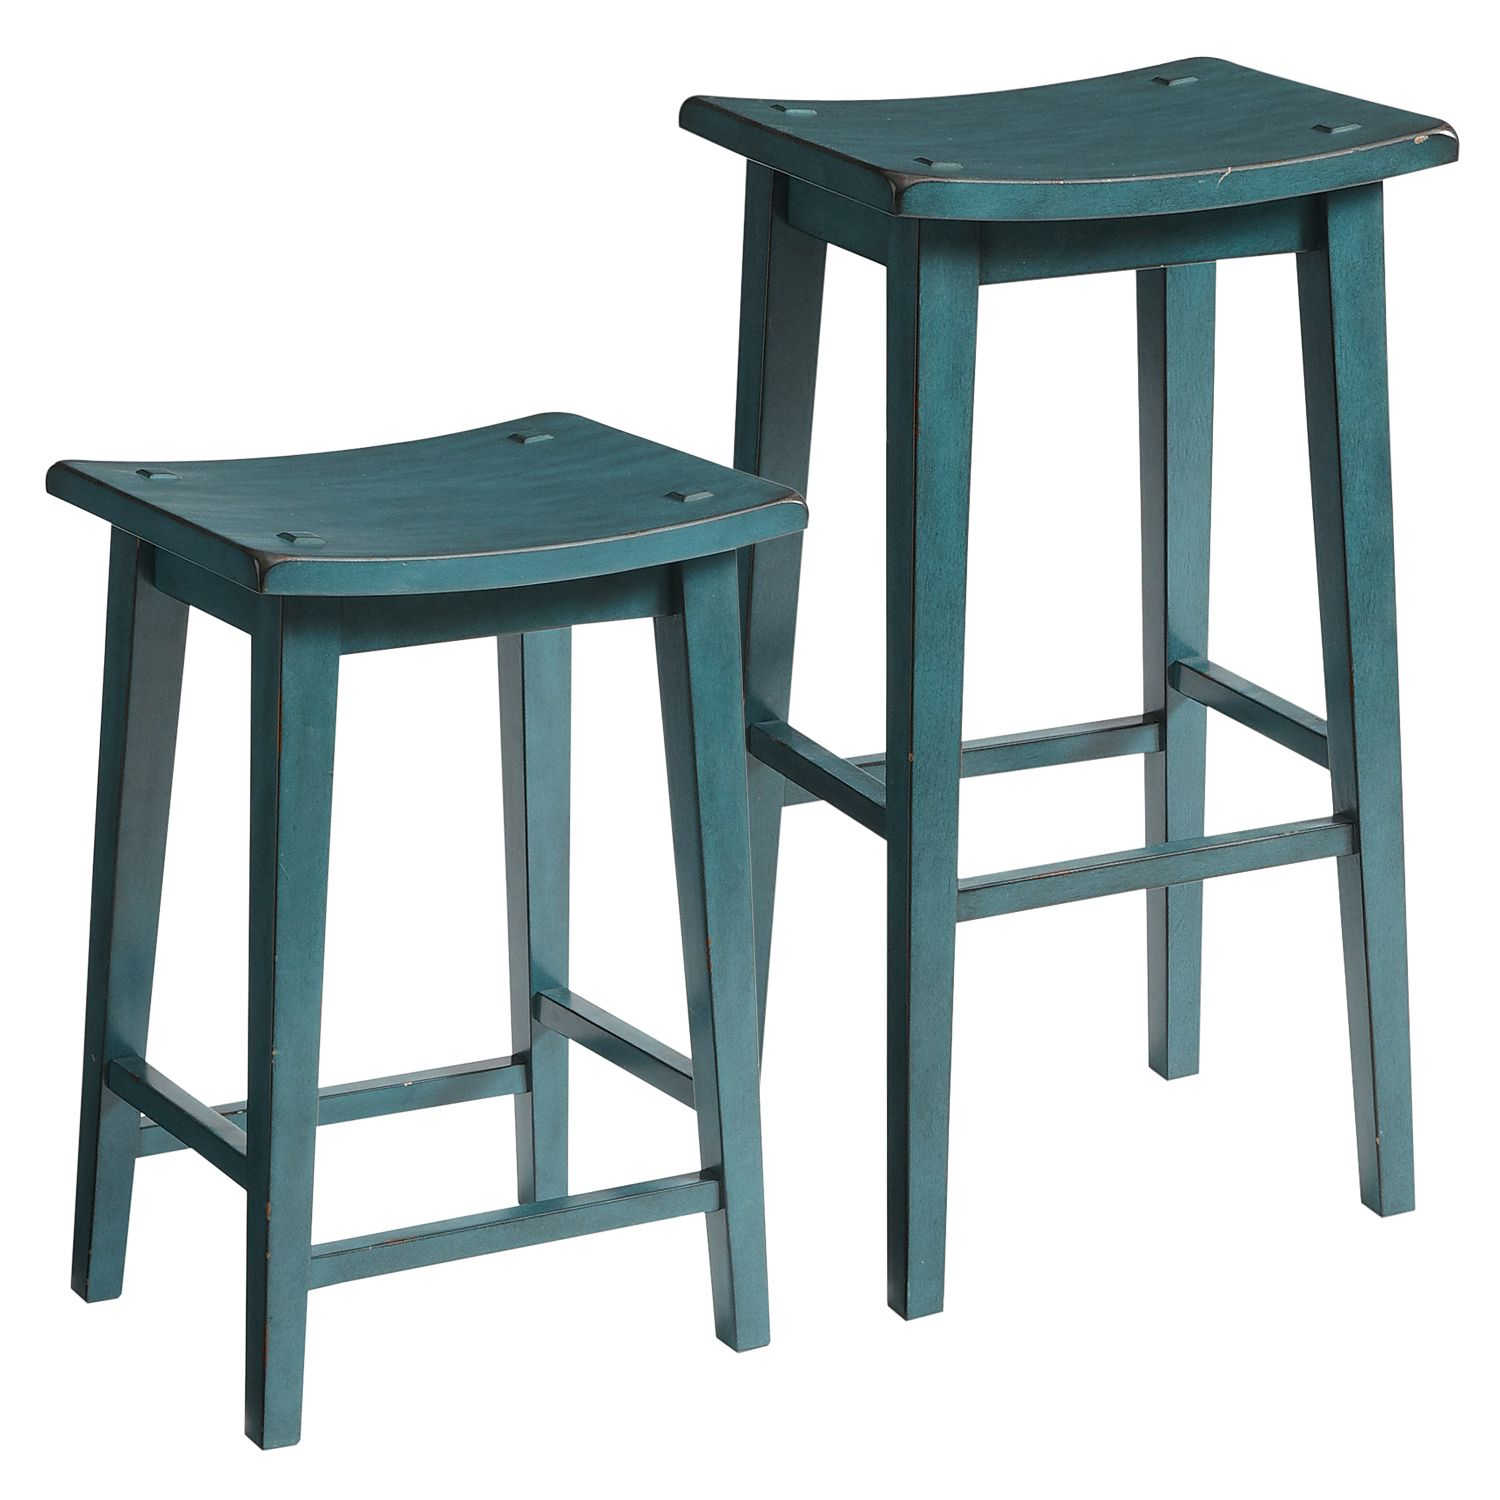 Teal Kitchen Chairs Lawson Backless Bar And Counter Stools Teal Hardwood